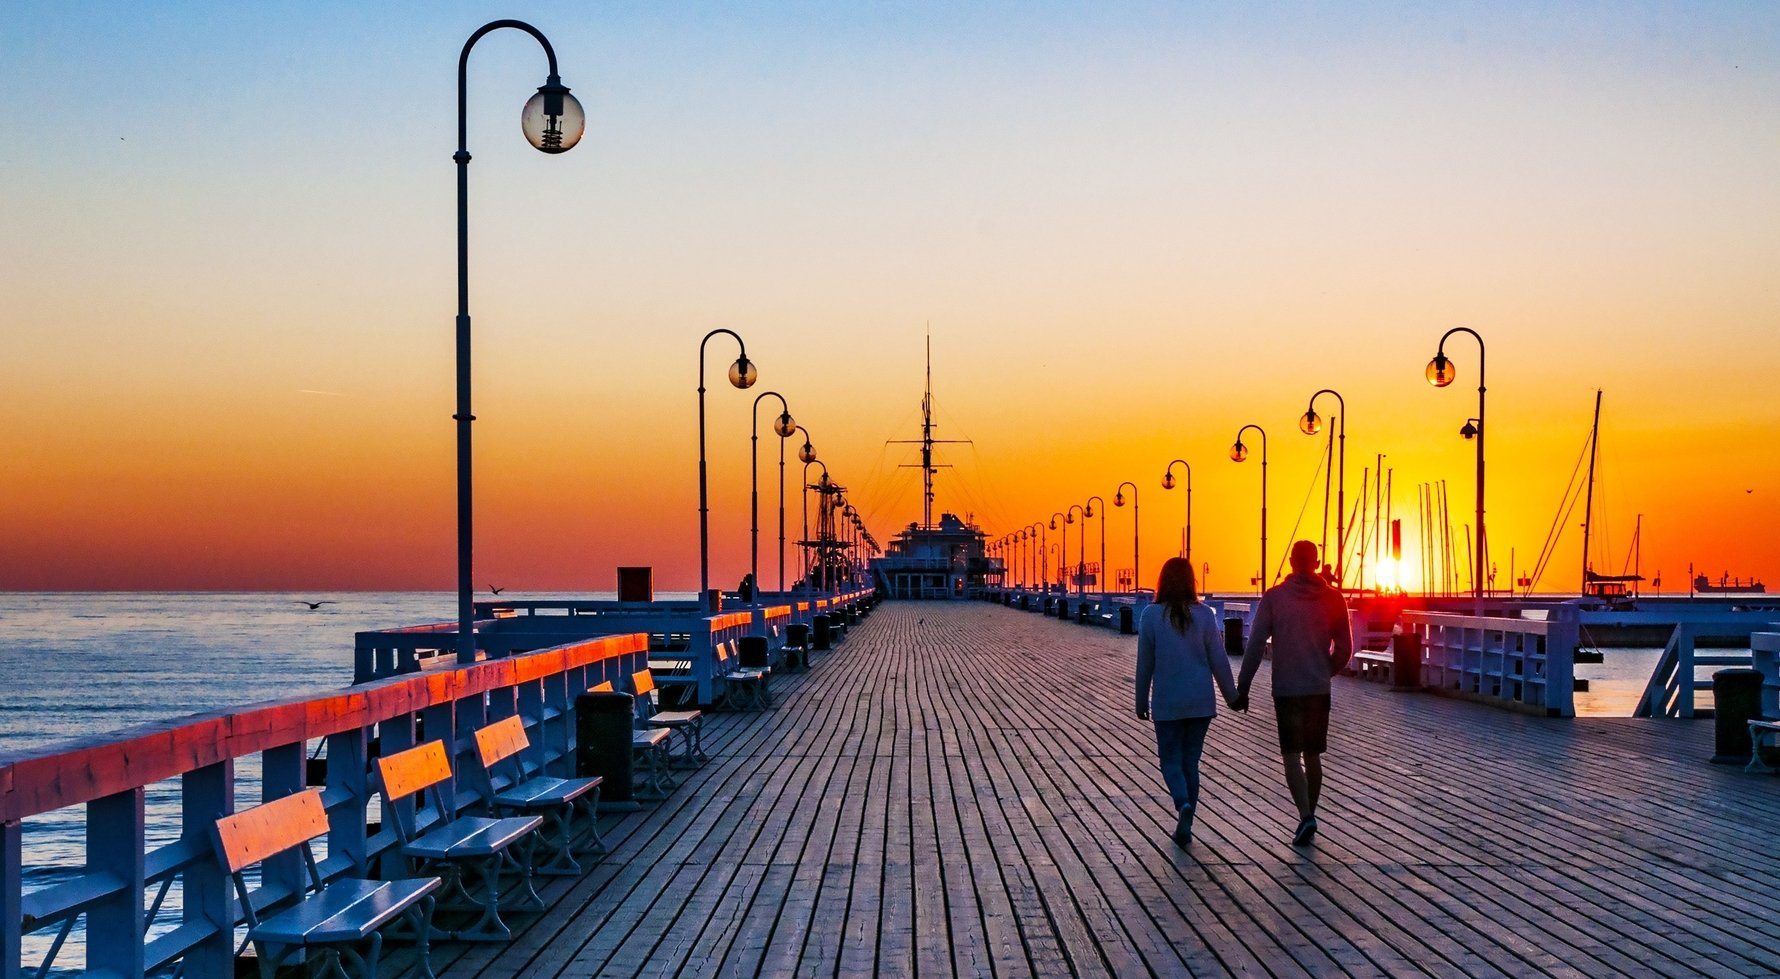 Sopot Pier at Dawn. Photo by Kilhan